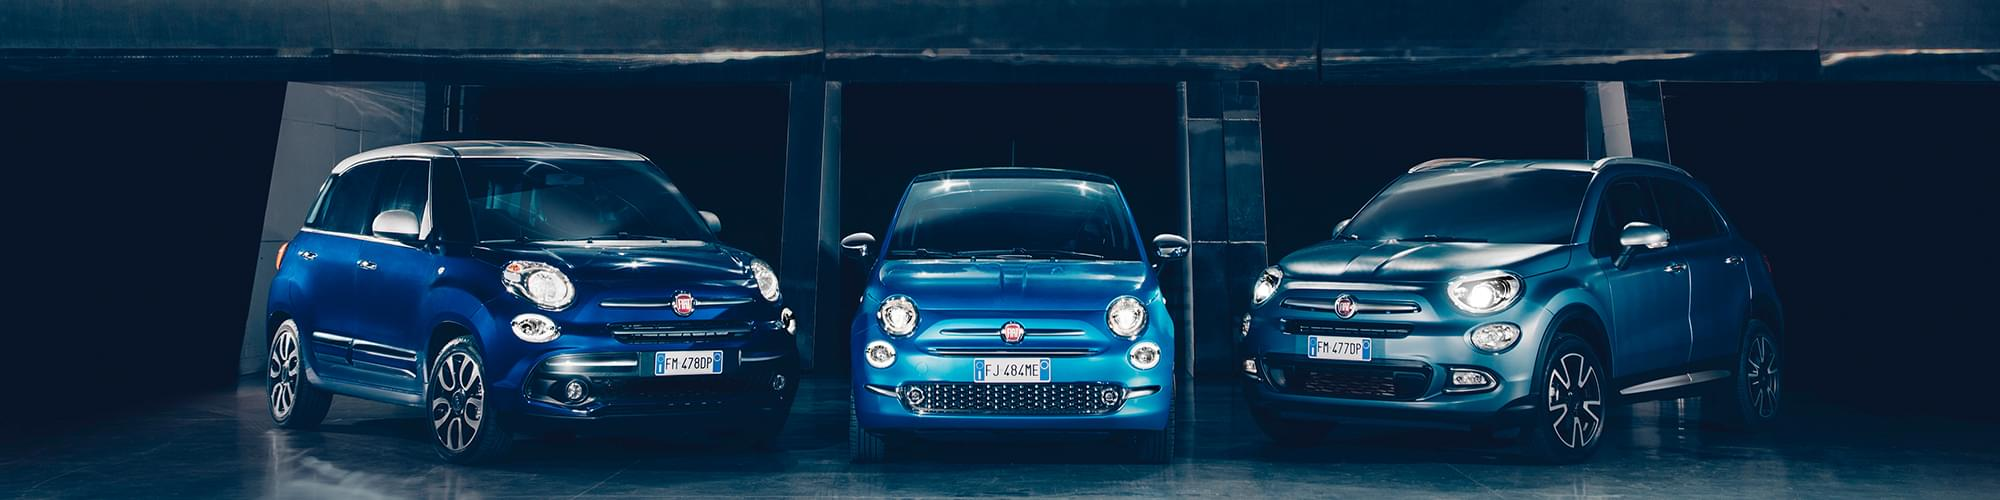 Fiat Mirror Sondermodelle mit Android Auto und Apple CarPlay